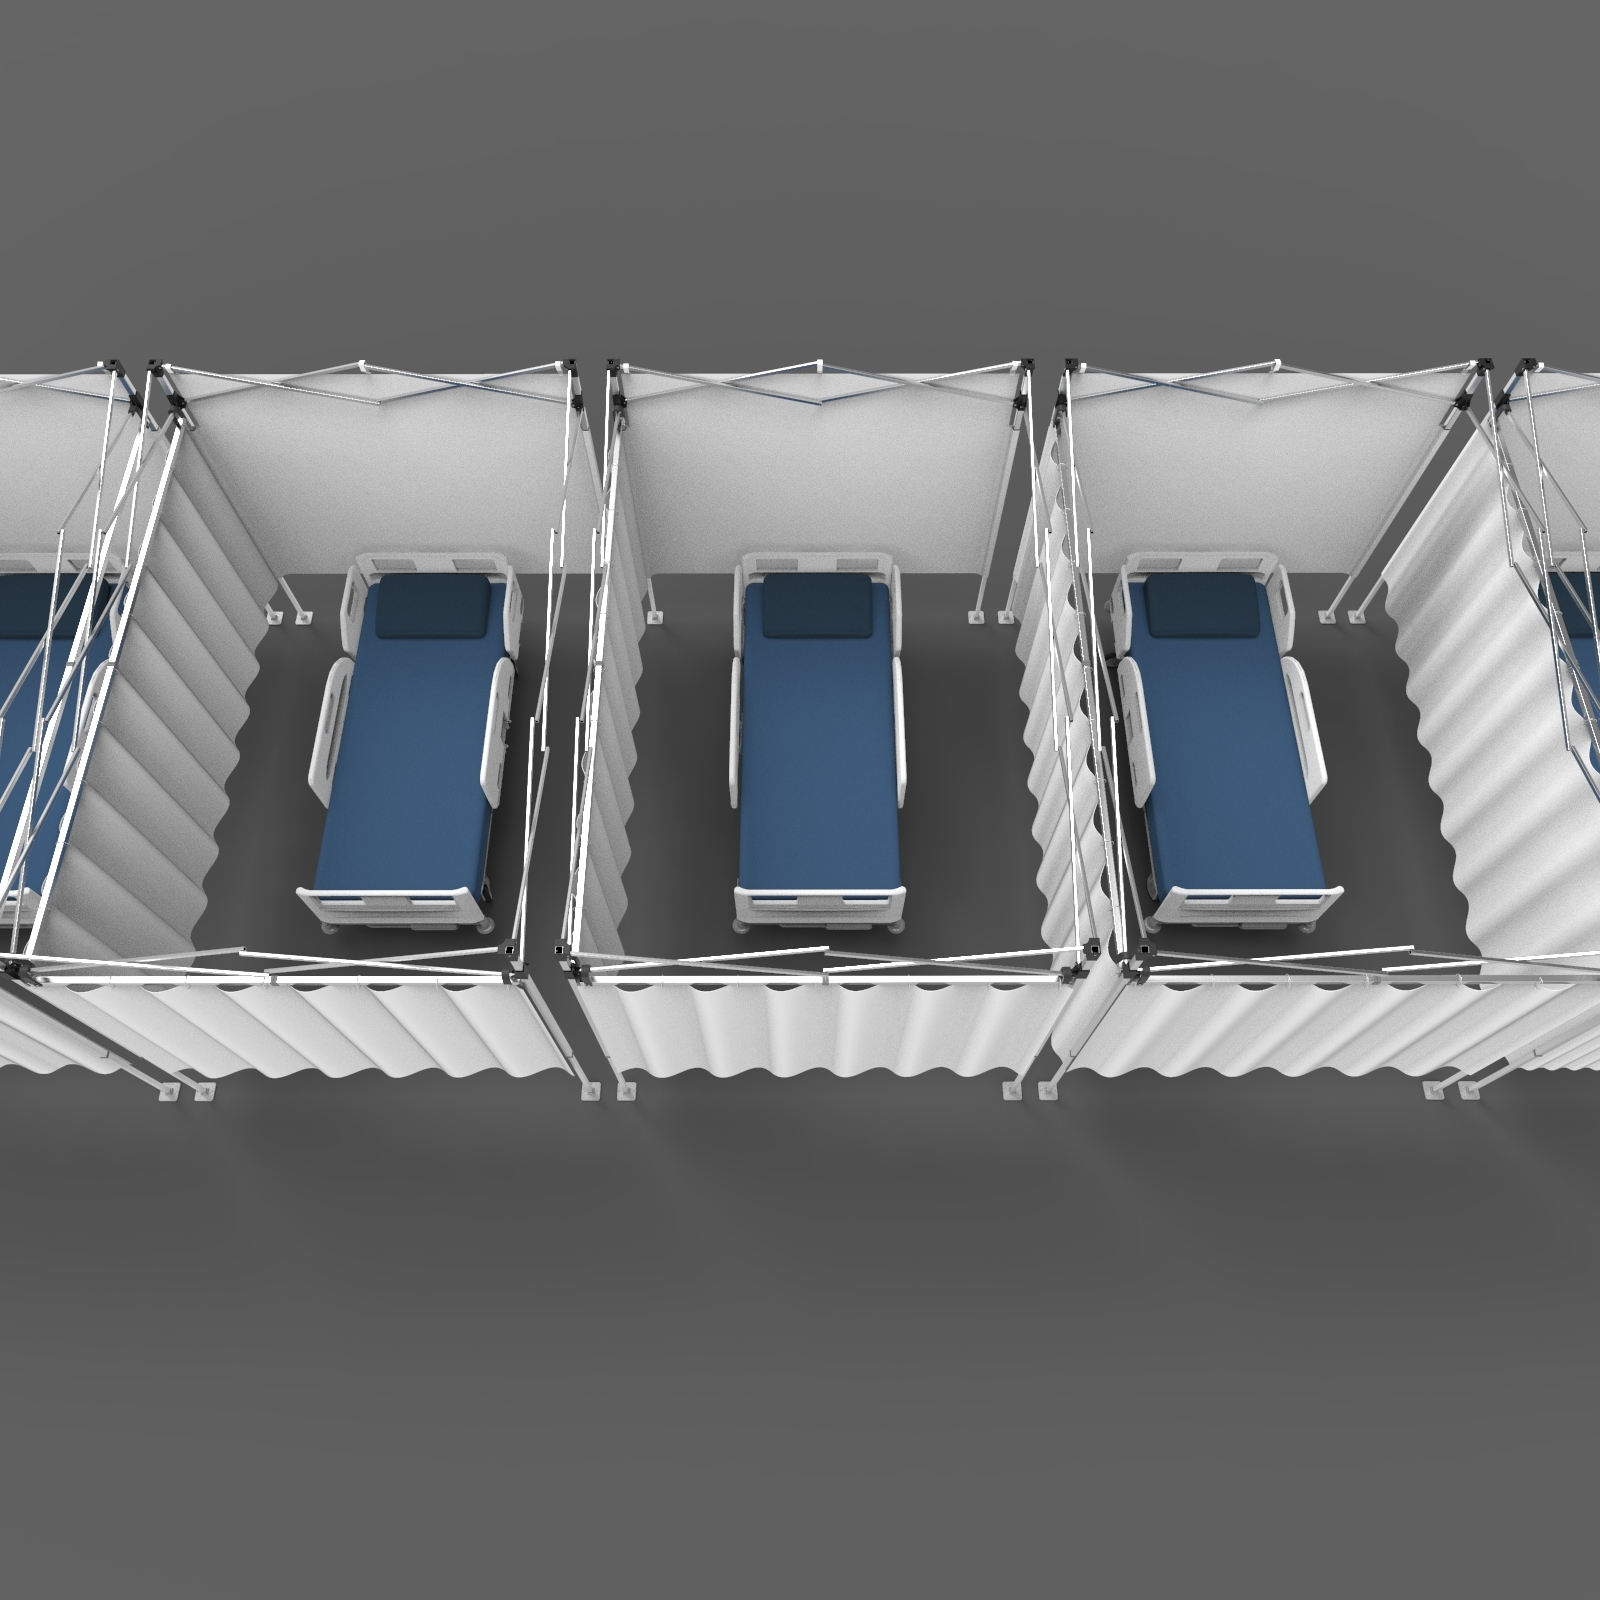 Hospital beds in separate rooms created with a hospital partition system